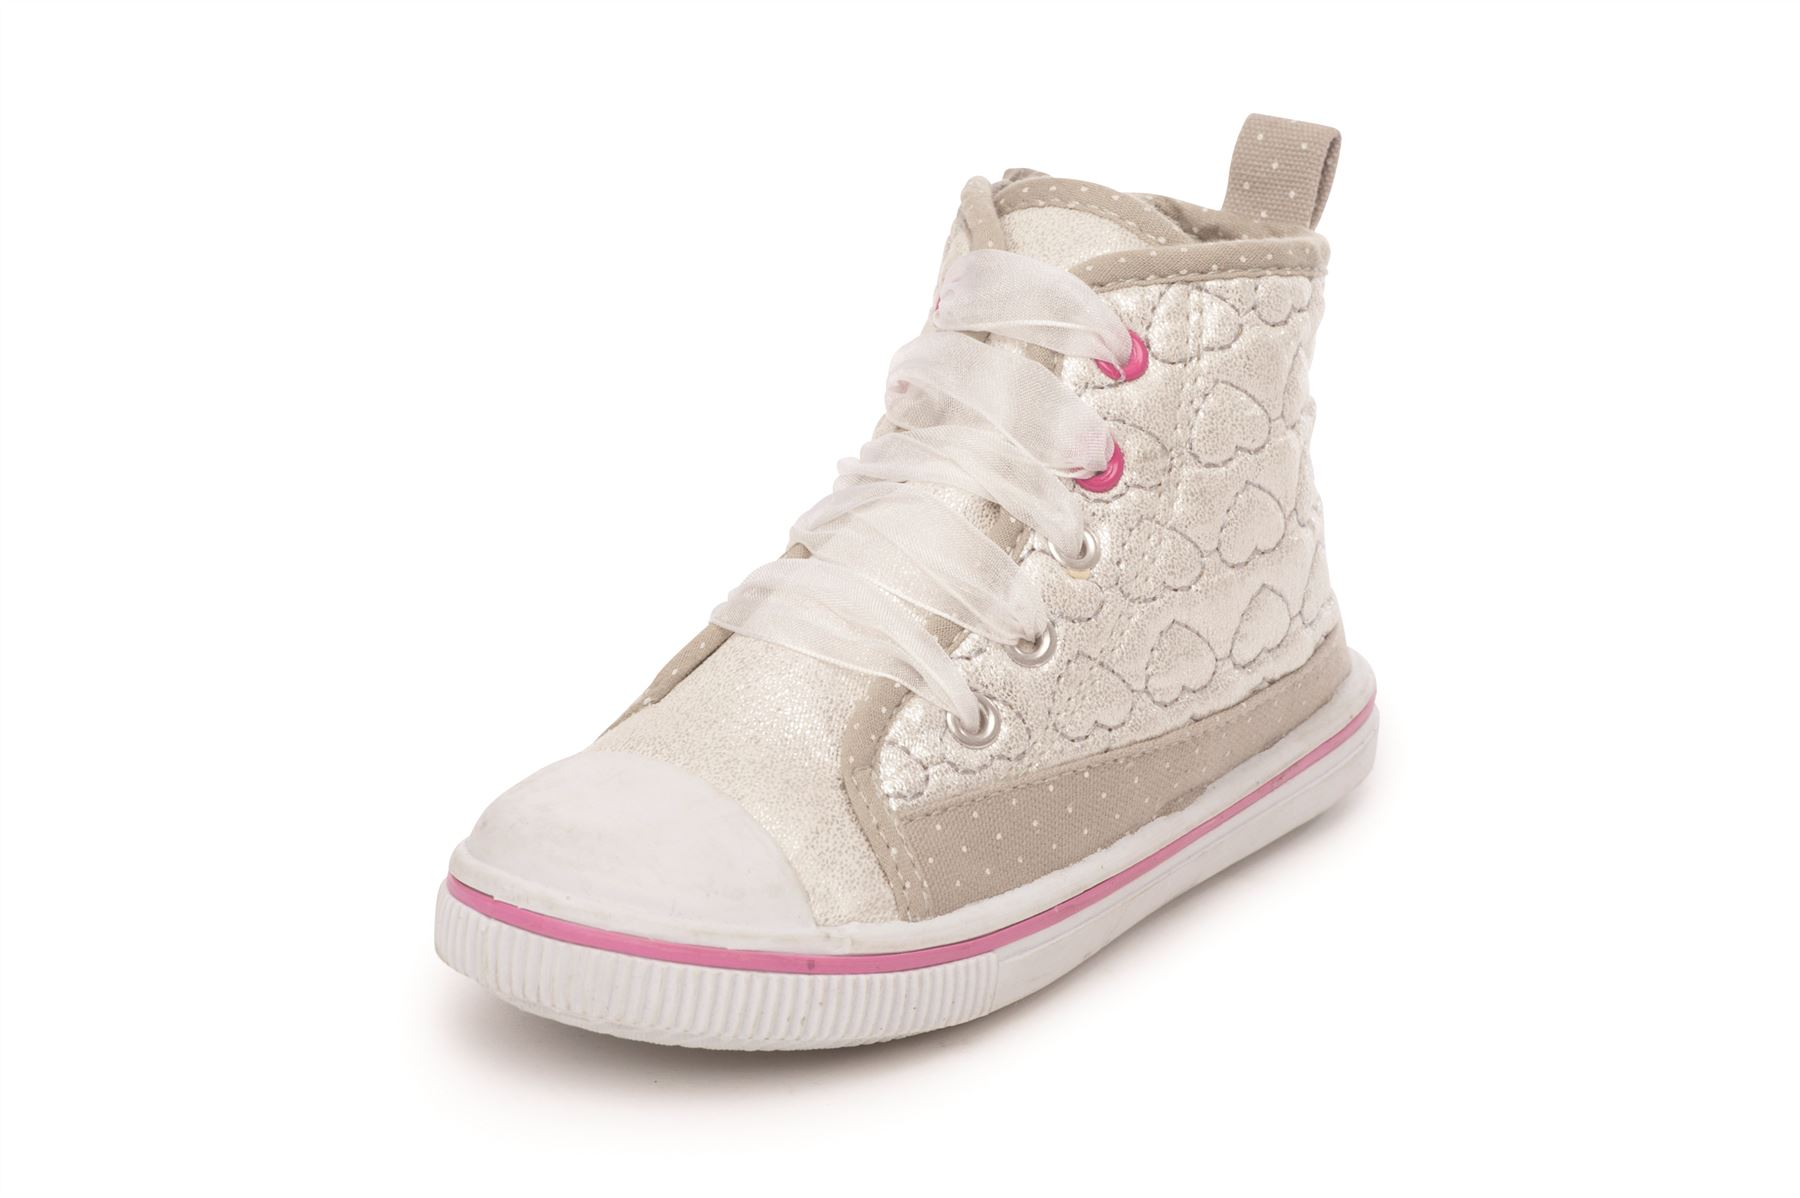 Shop bestselling Girl's Shoes at Vans including Girl's Classics, Slip Ons, Authentics, Low Top, High Top Shoes & More. Shop Kids Shoes at Vans today!